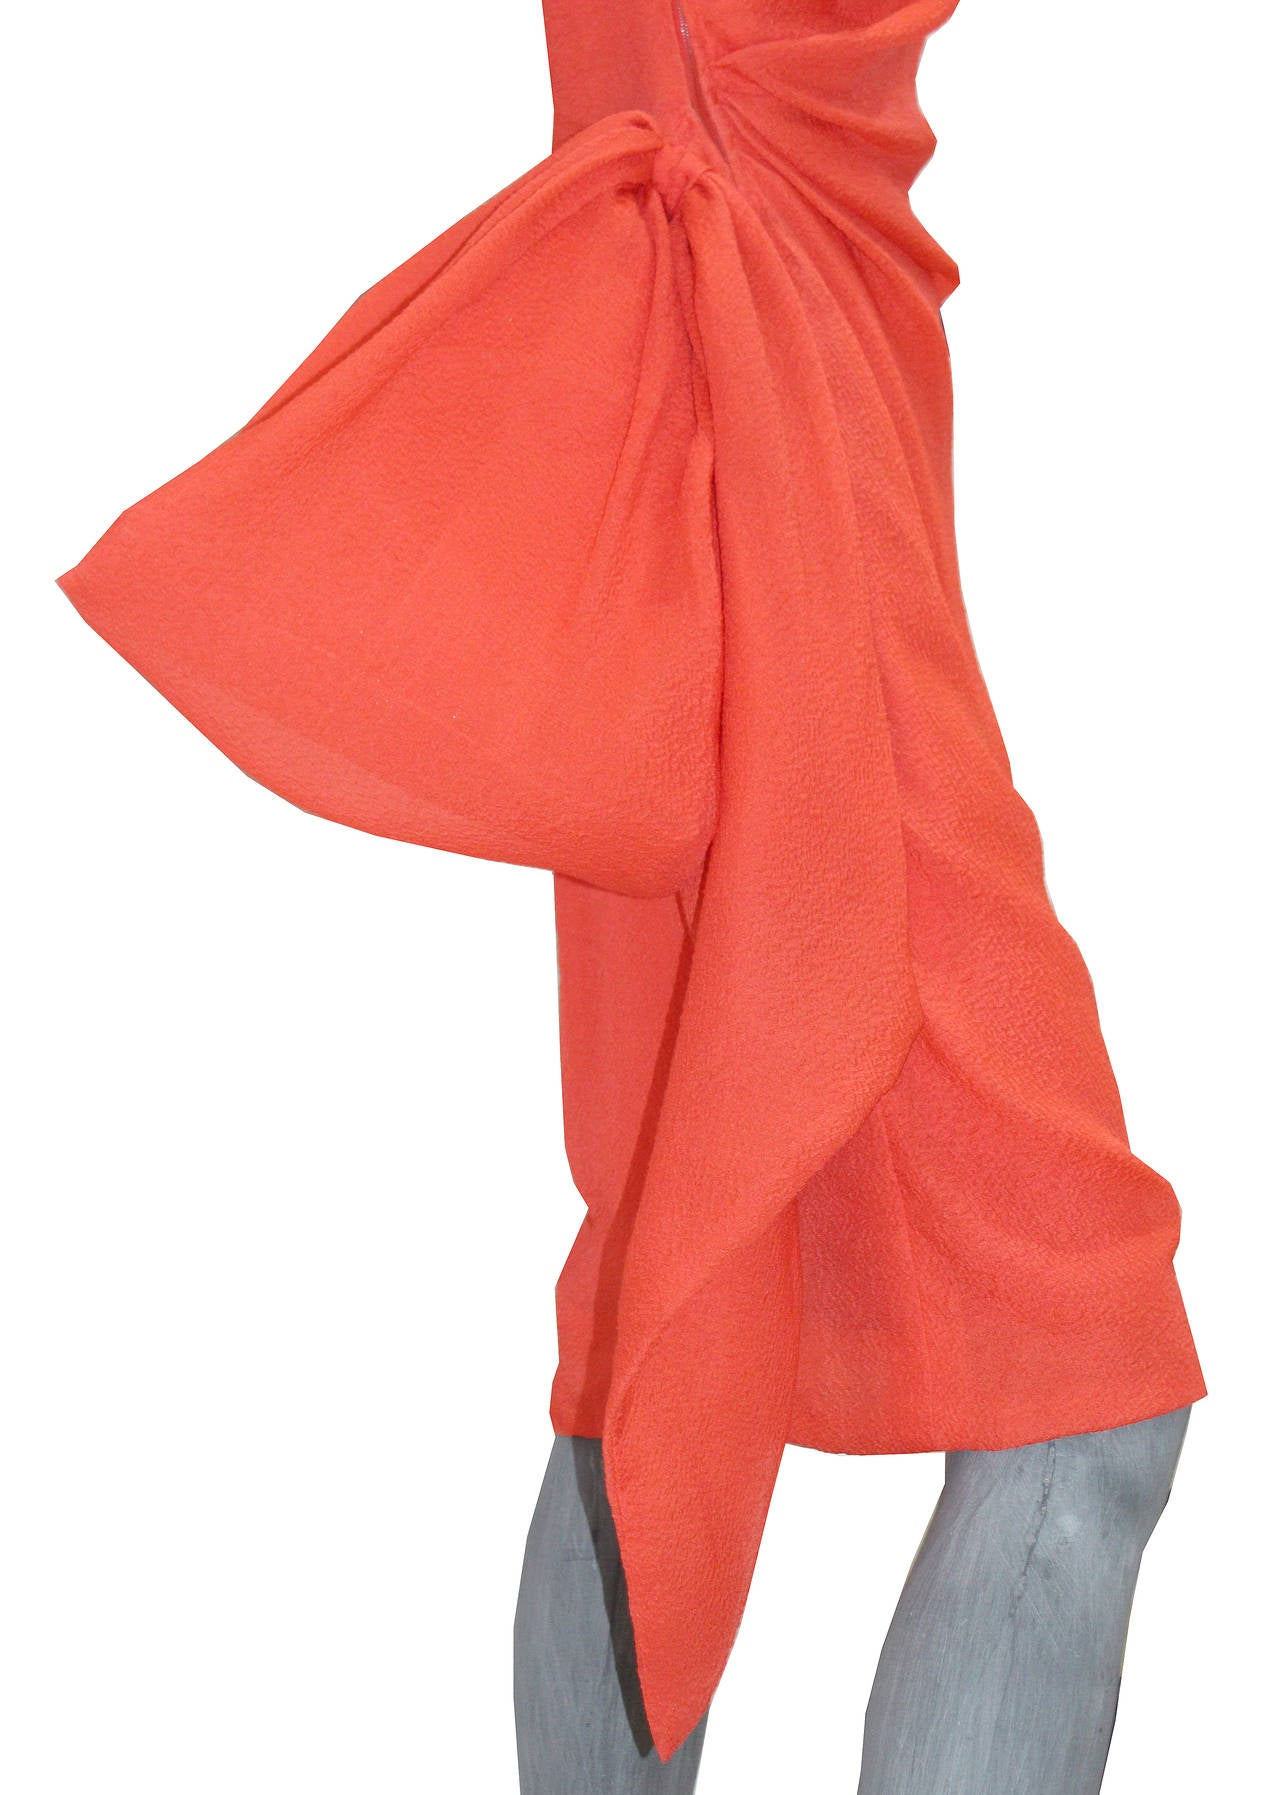 Fine and rare Givenchy silk crêpe coral one shoulder dress  c. 1988 3